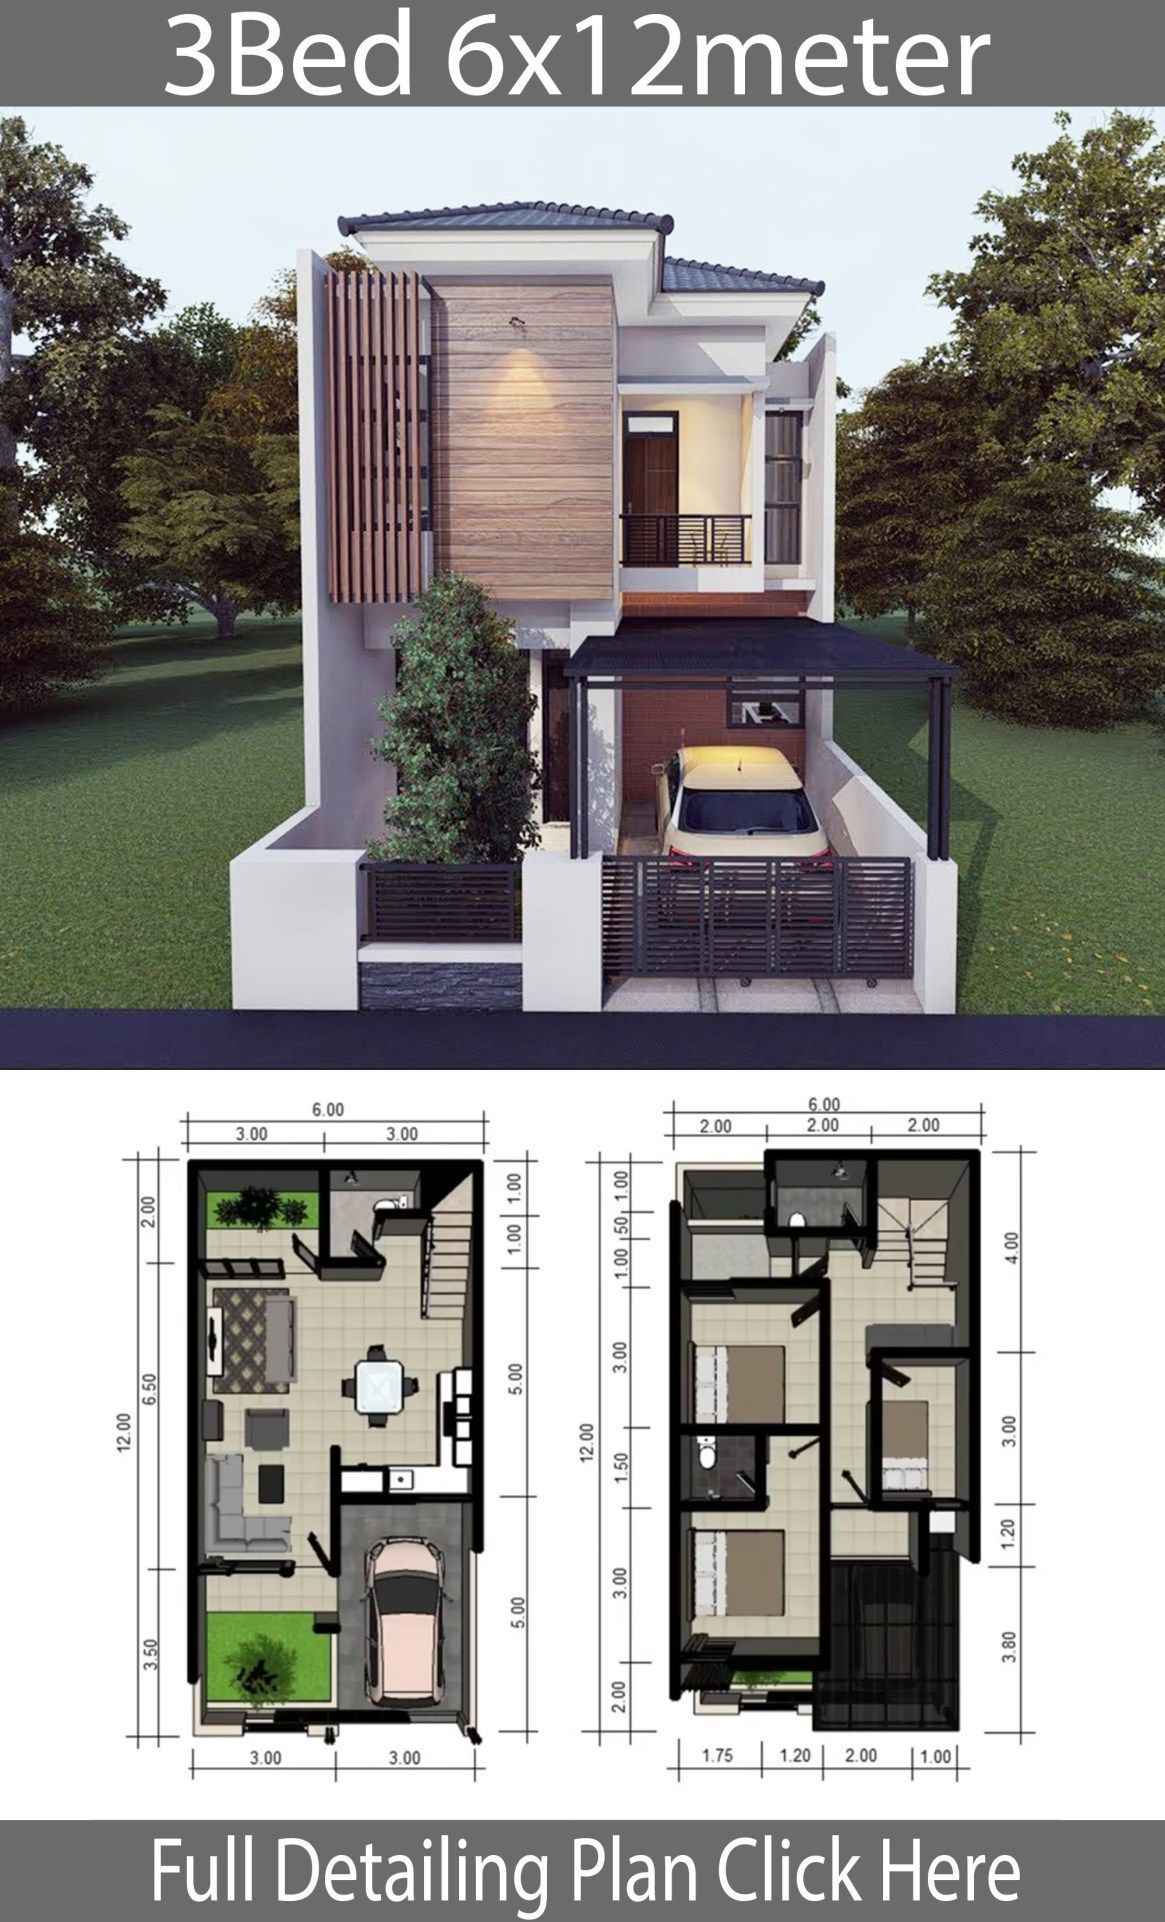 Home Design Plan 6x12m With 3 Bedrooms Home Design With